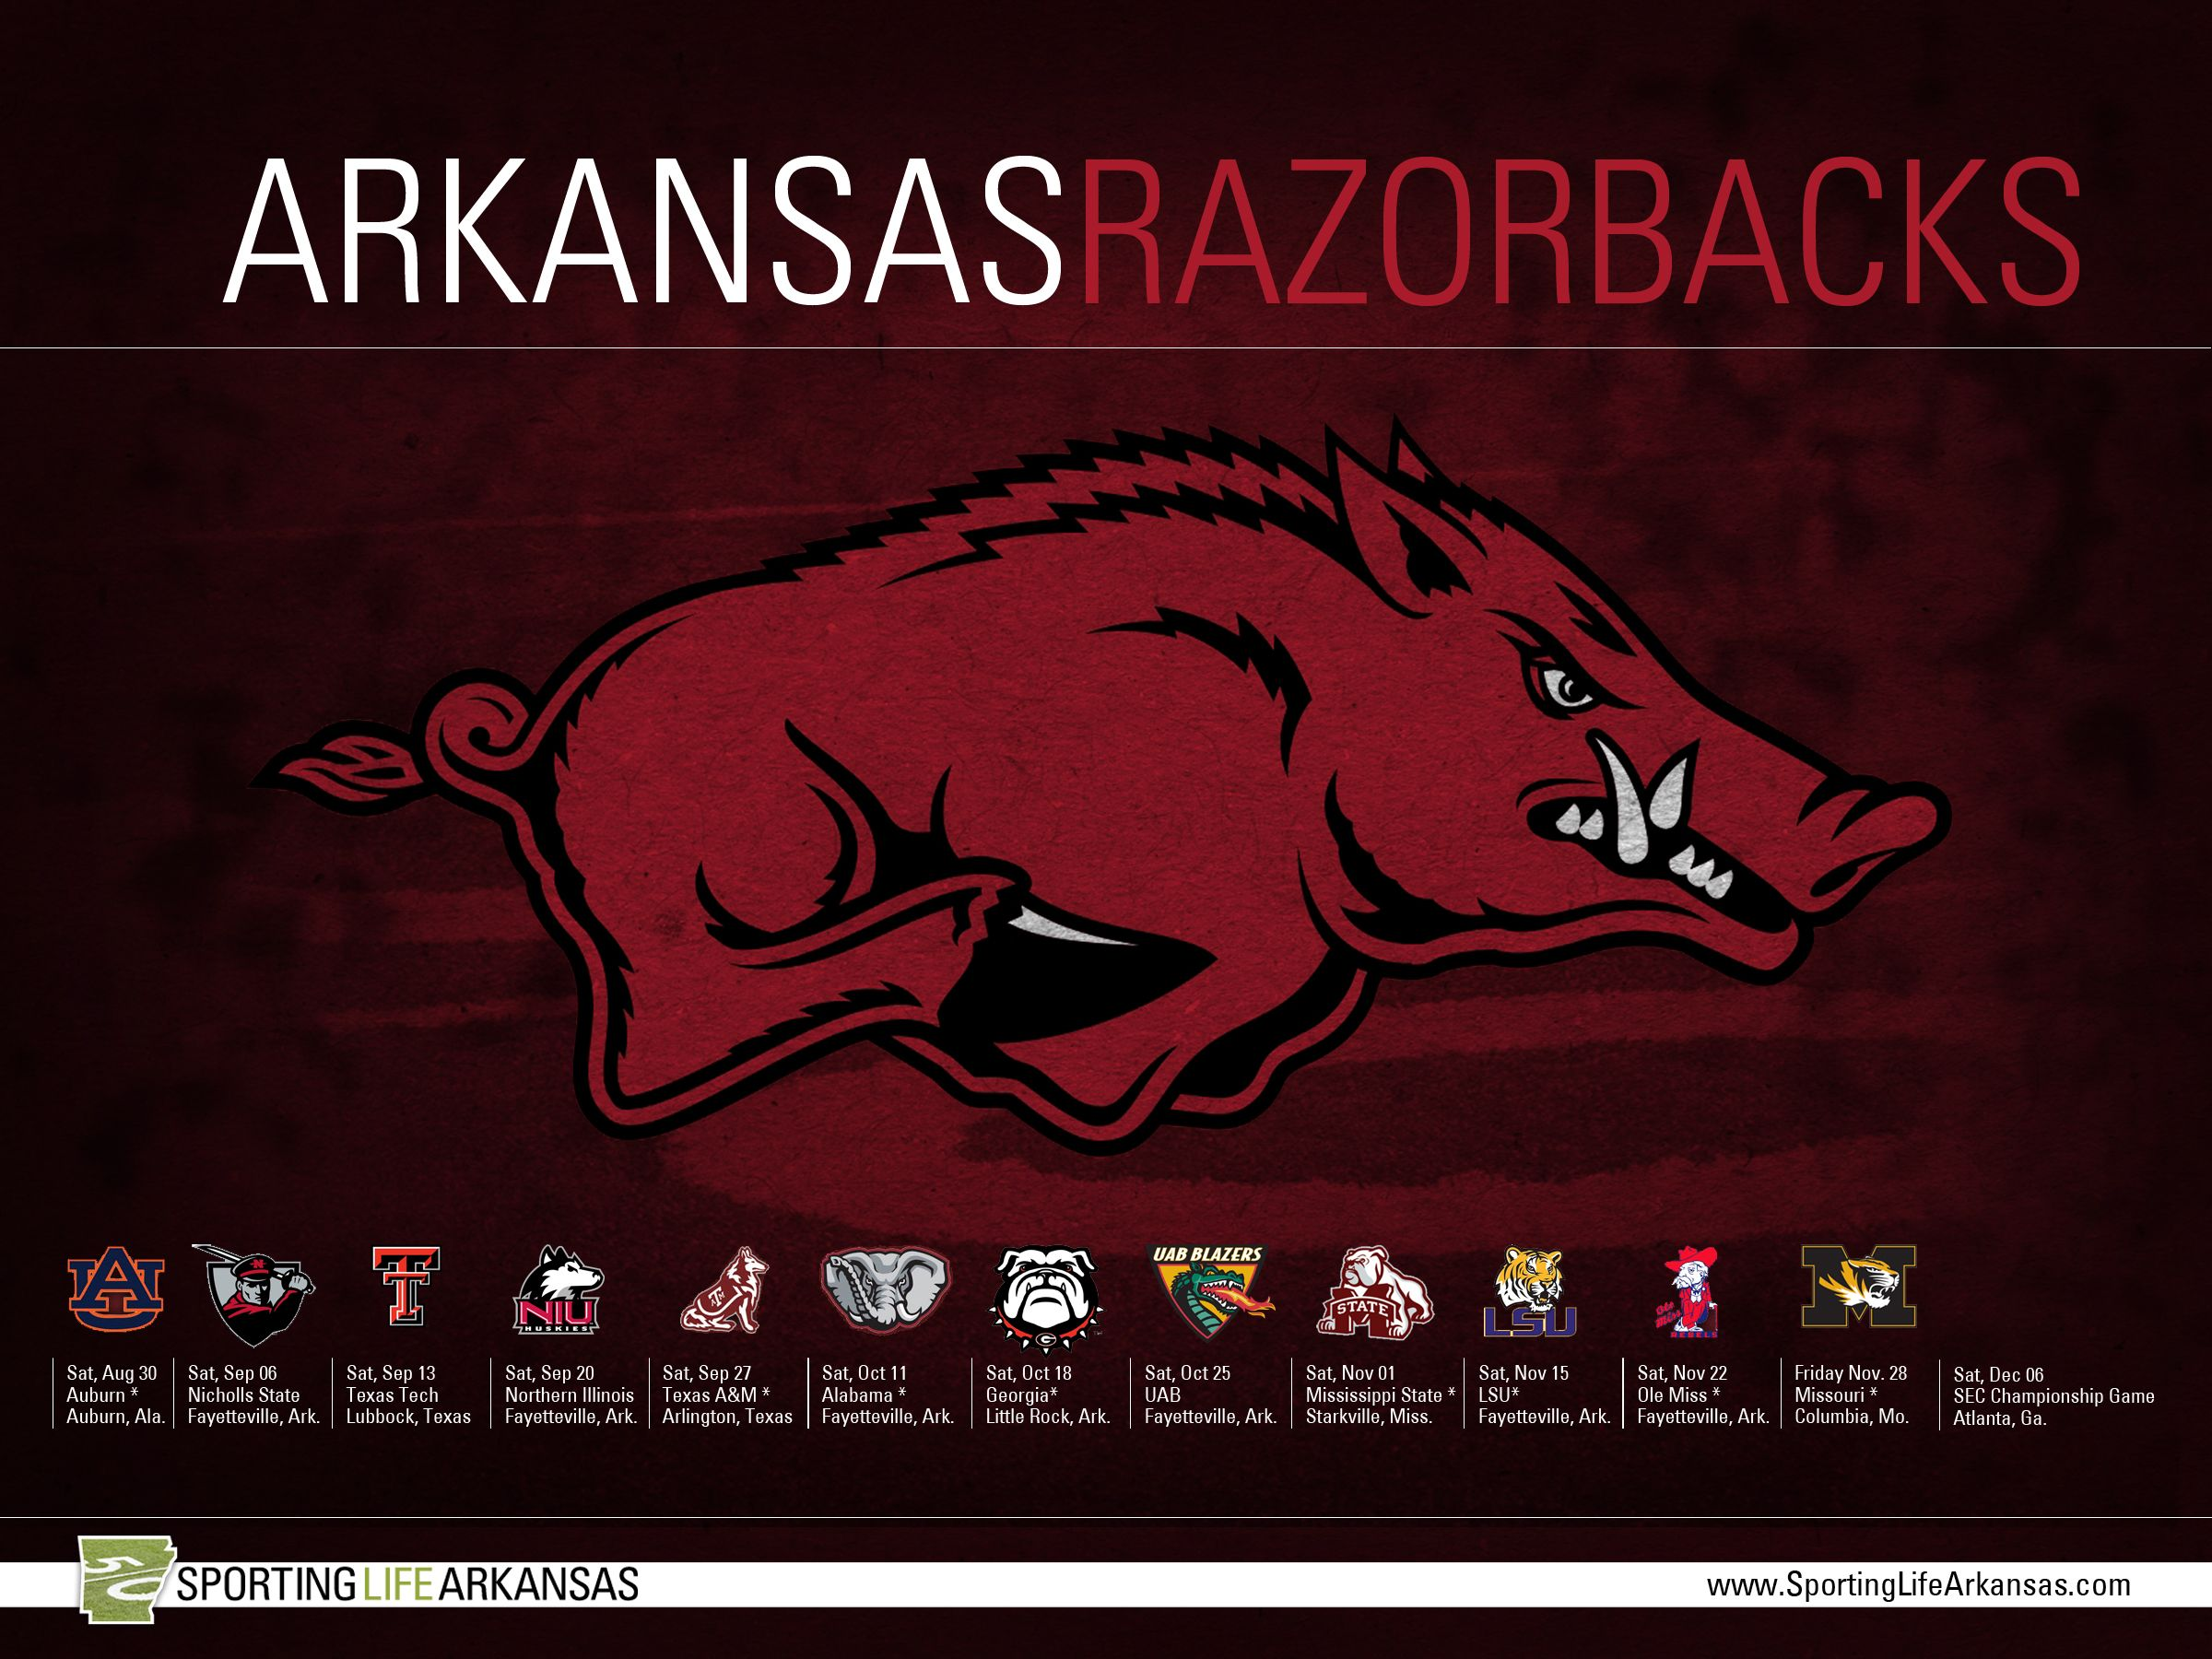 Arkansas Desktop Wallpaper Arkansas Razorbacks HD Wallpapers Download Free Images Wallpaper [1000image.com]